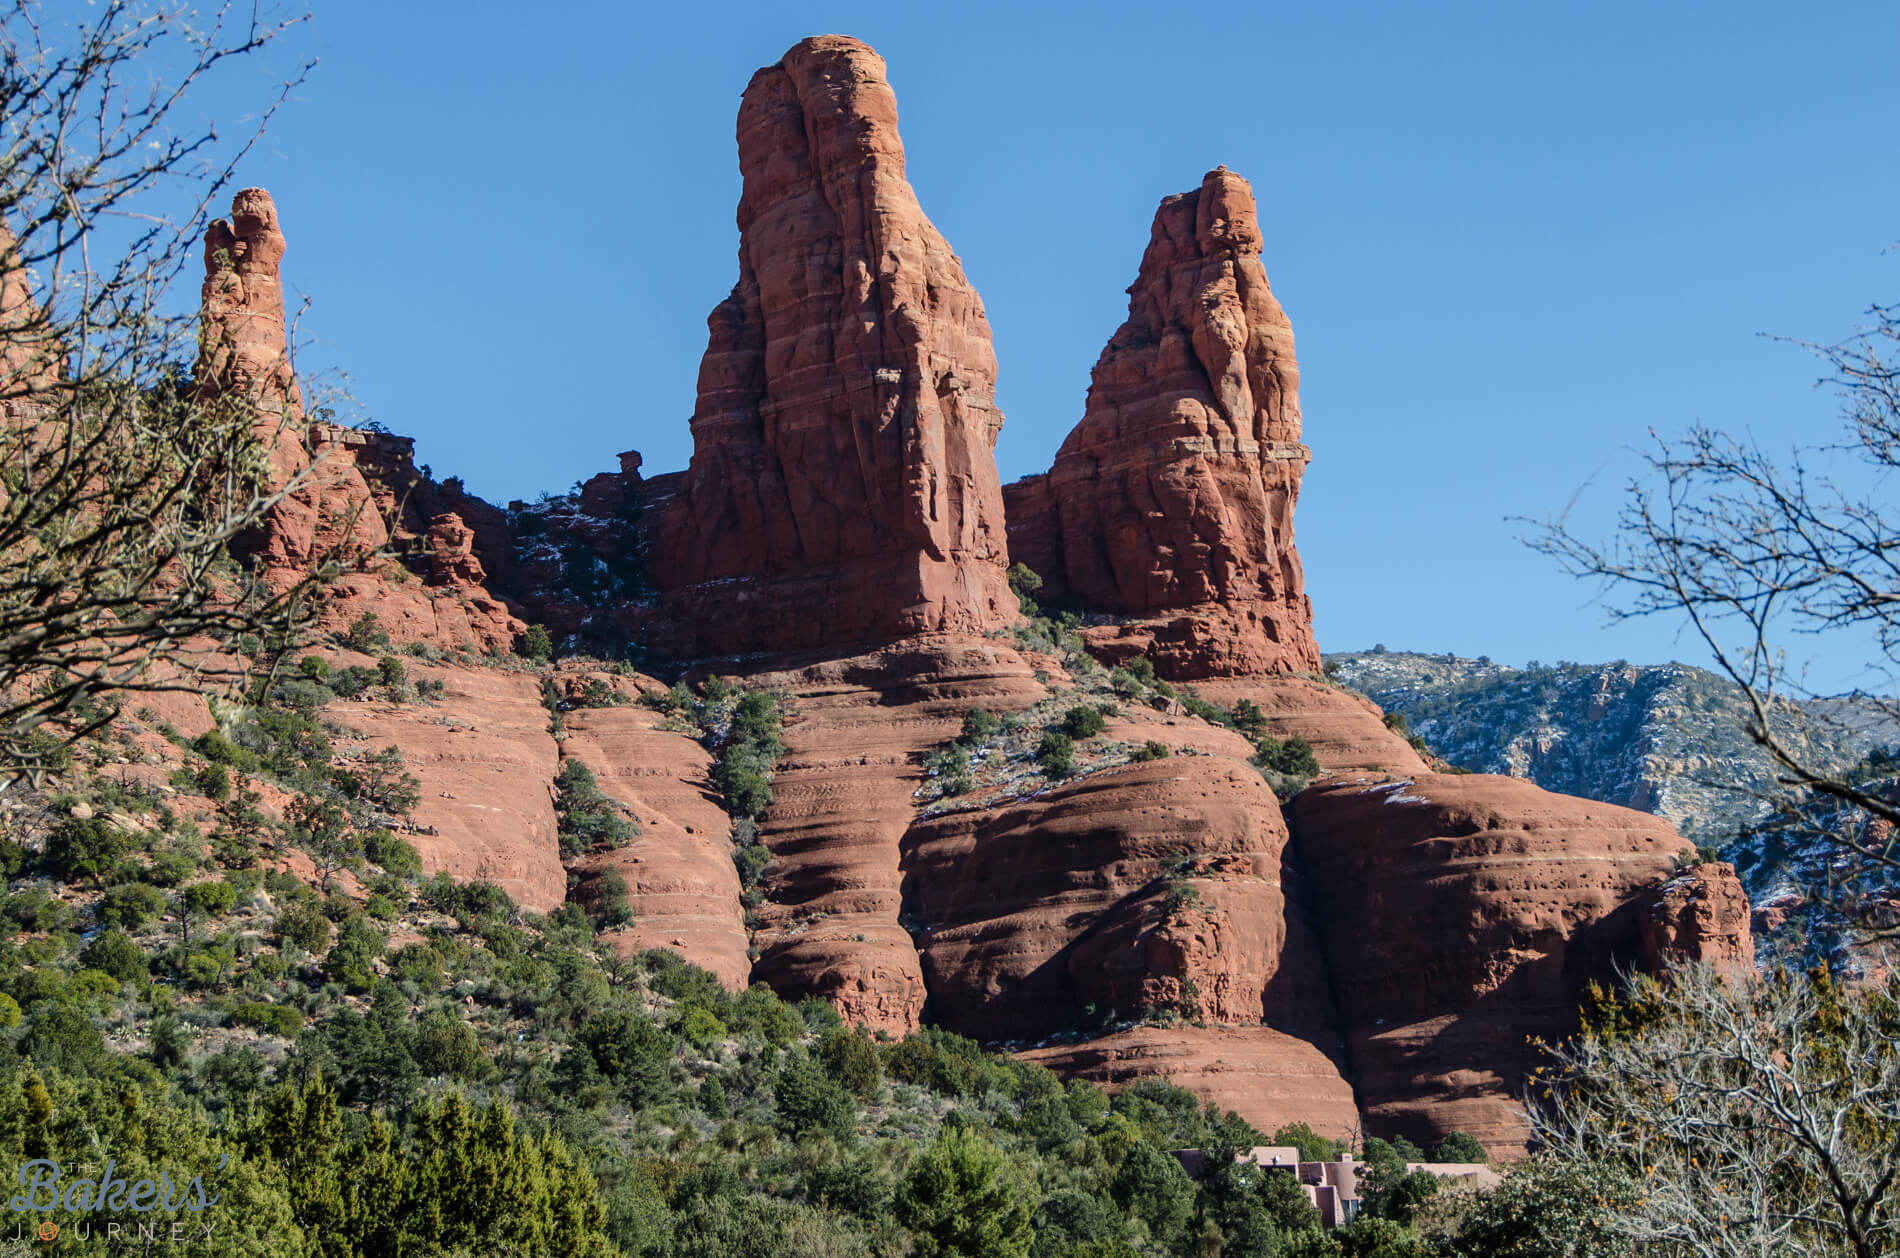 The Best Views in Sedona